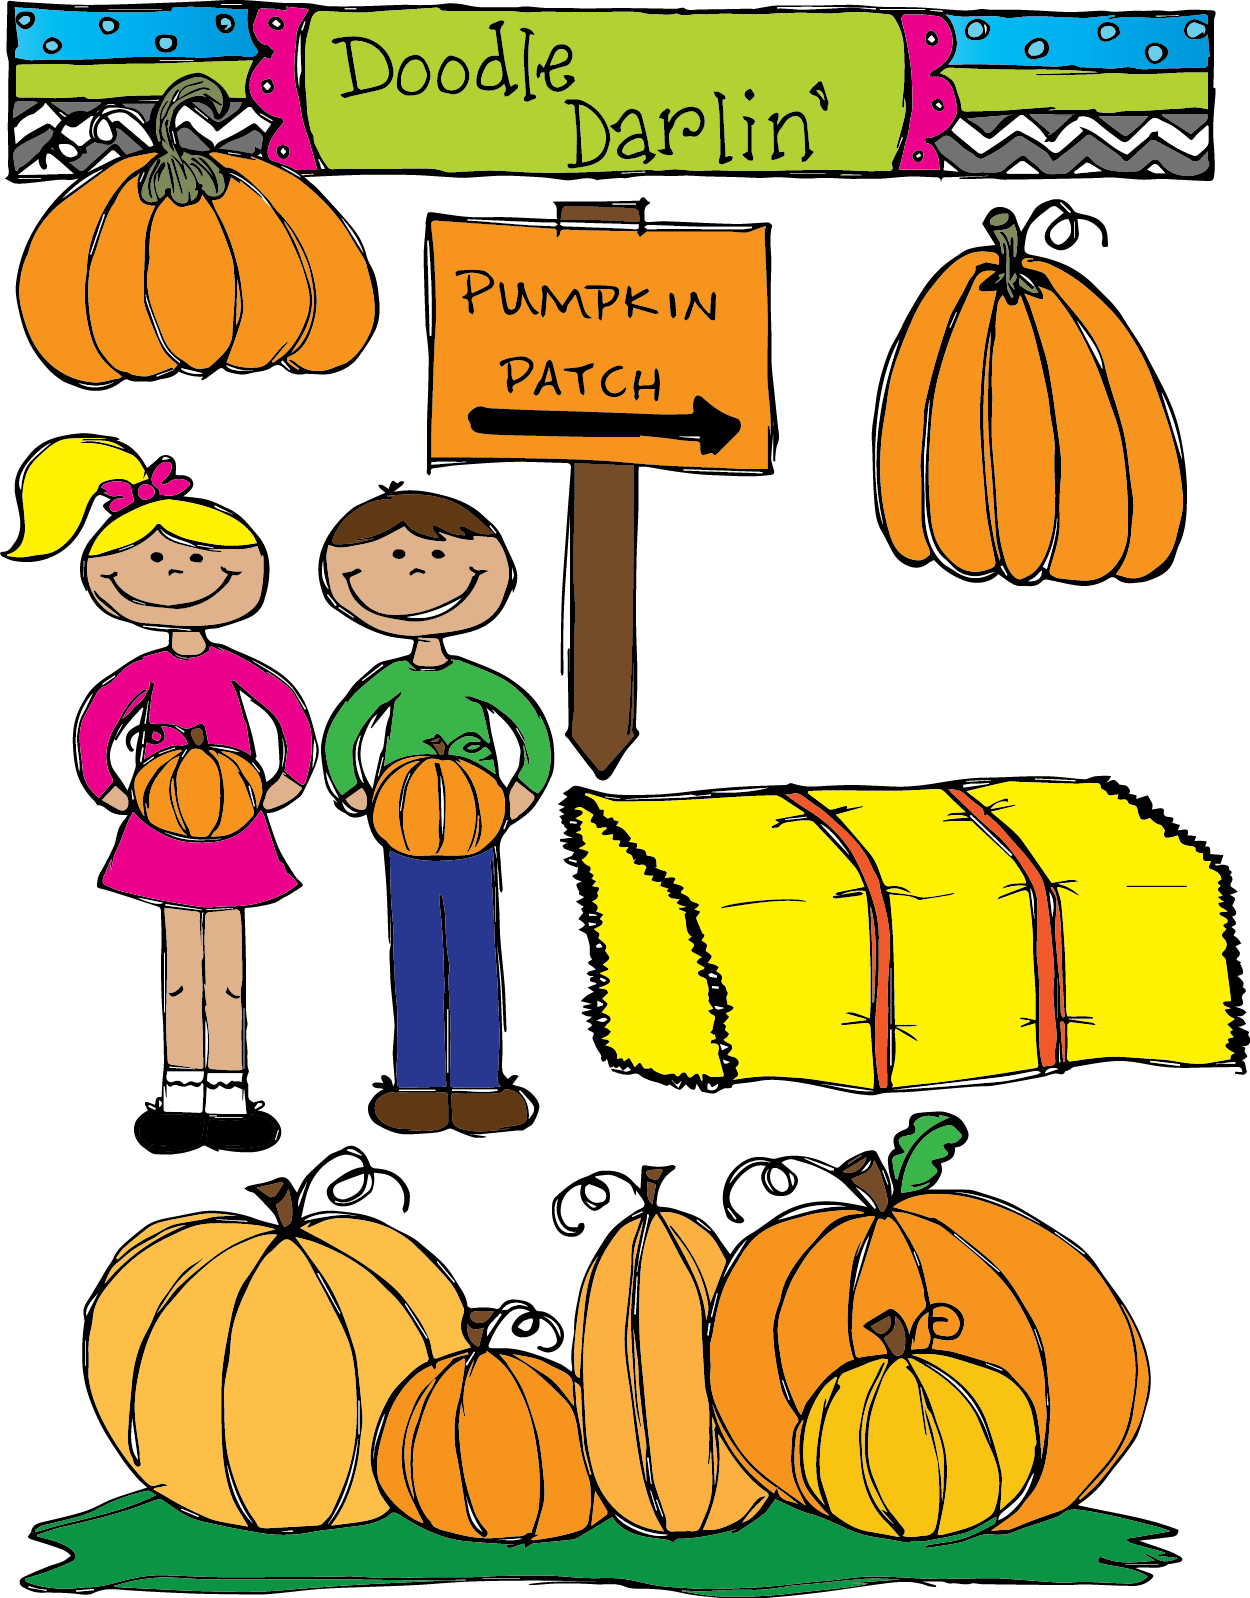 Pumpkin patch clipart free images 7